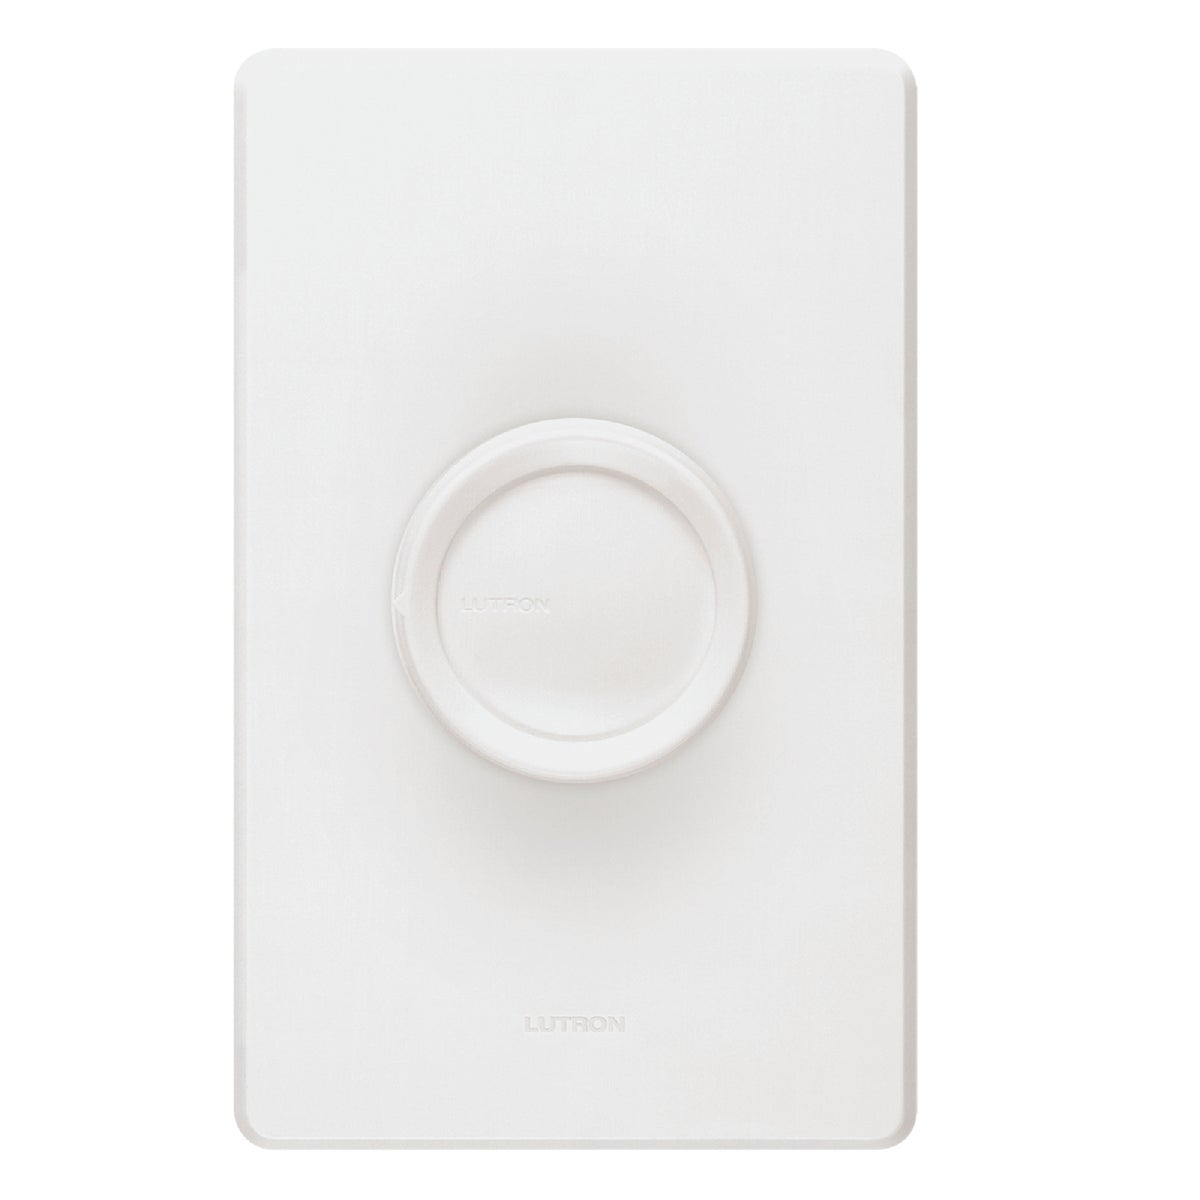 WHT/IV PUSH ON 3W DIMMER - D-603PH-DK by Lutron Elect Co Inc